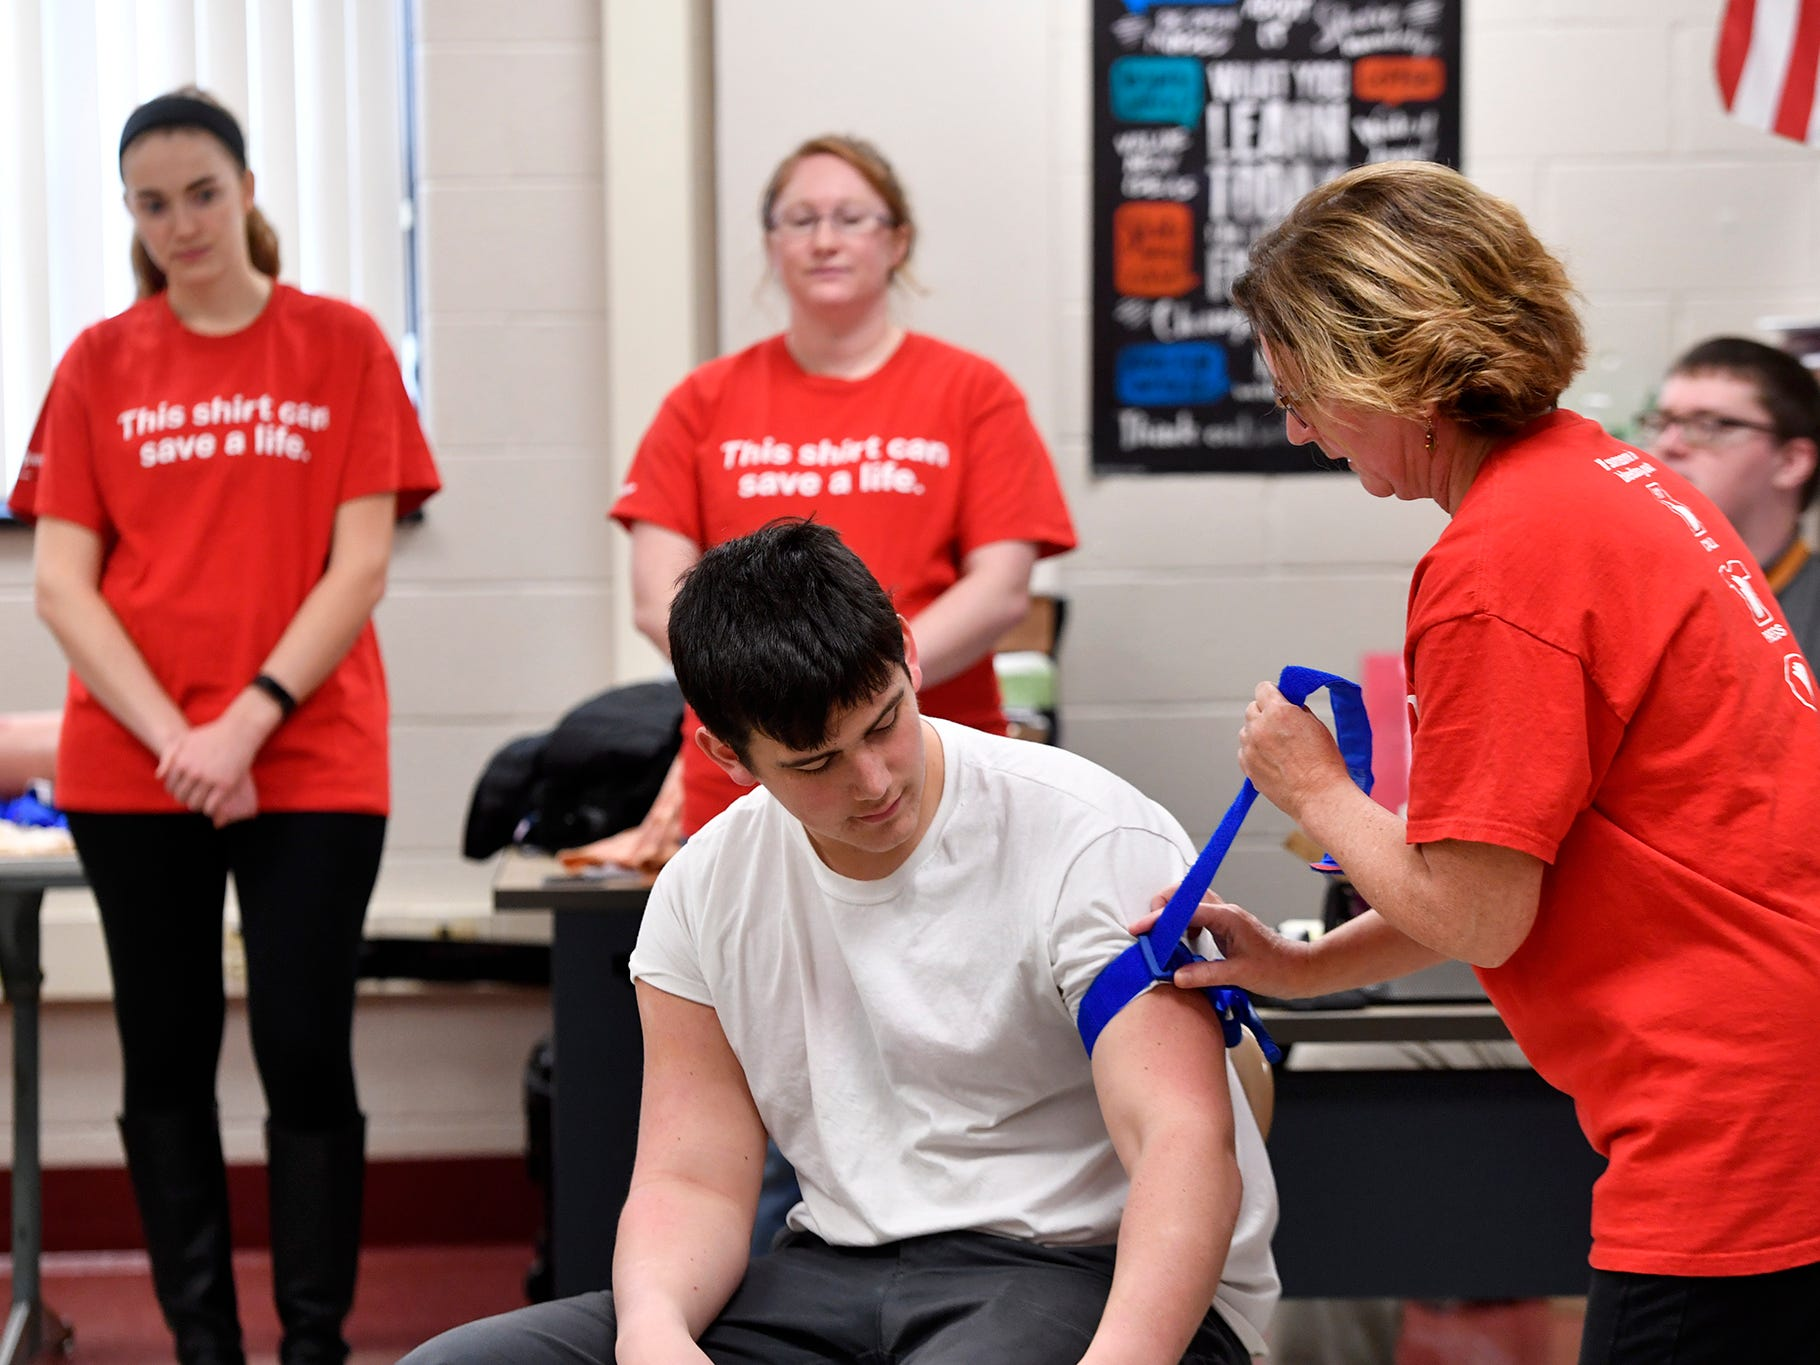 Kelli Masters, assistant professor of nursing at York College, demonstrates the proper way to apply a tourniquet on Trey Bernstein, 16 , for students in the William Penn Senior High School Public Safety and Emergency Services class, Tuesday, November 27, 2018. John A. Pavoncello photo